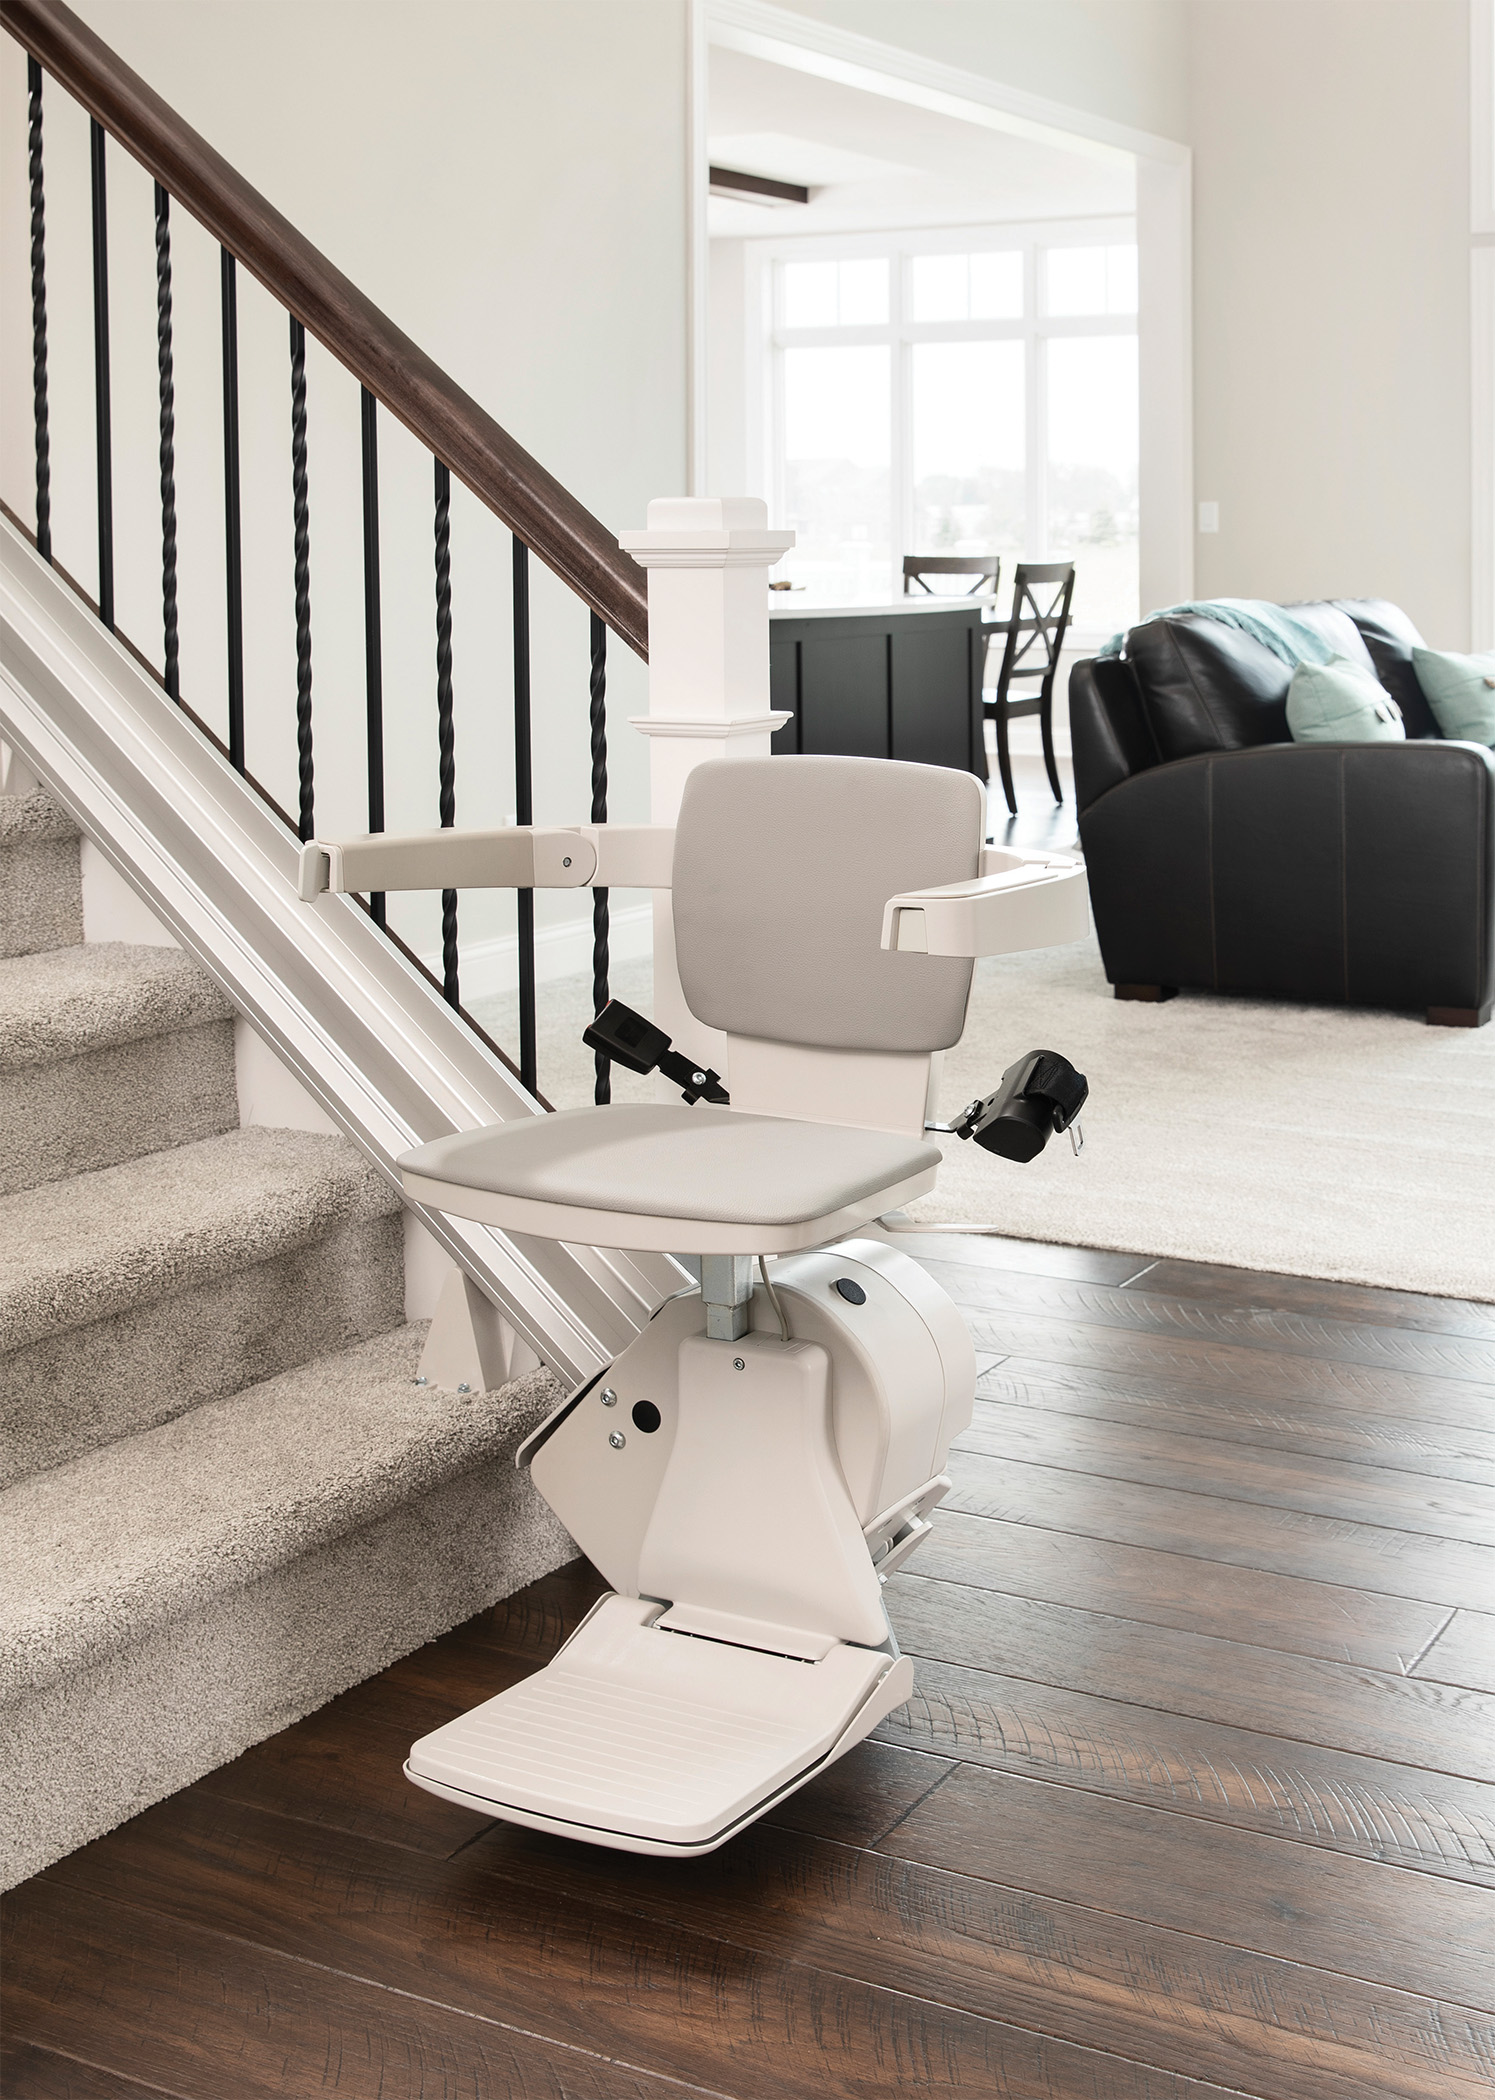 Bruno Elan SRE-3050Chairlift for straight stairs